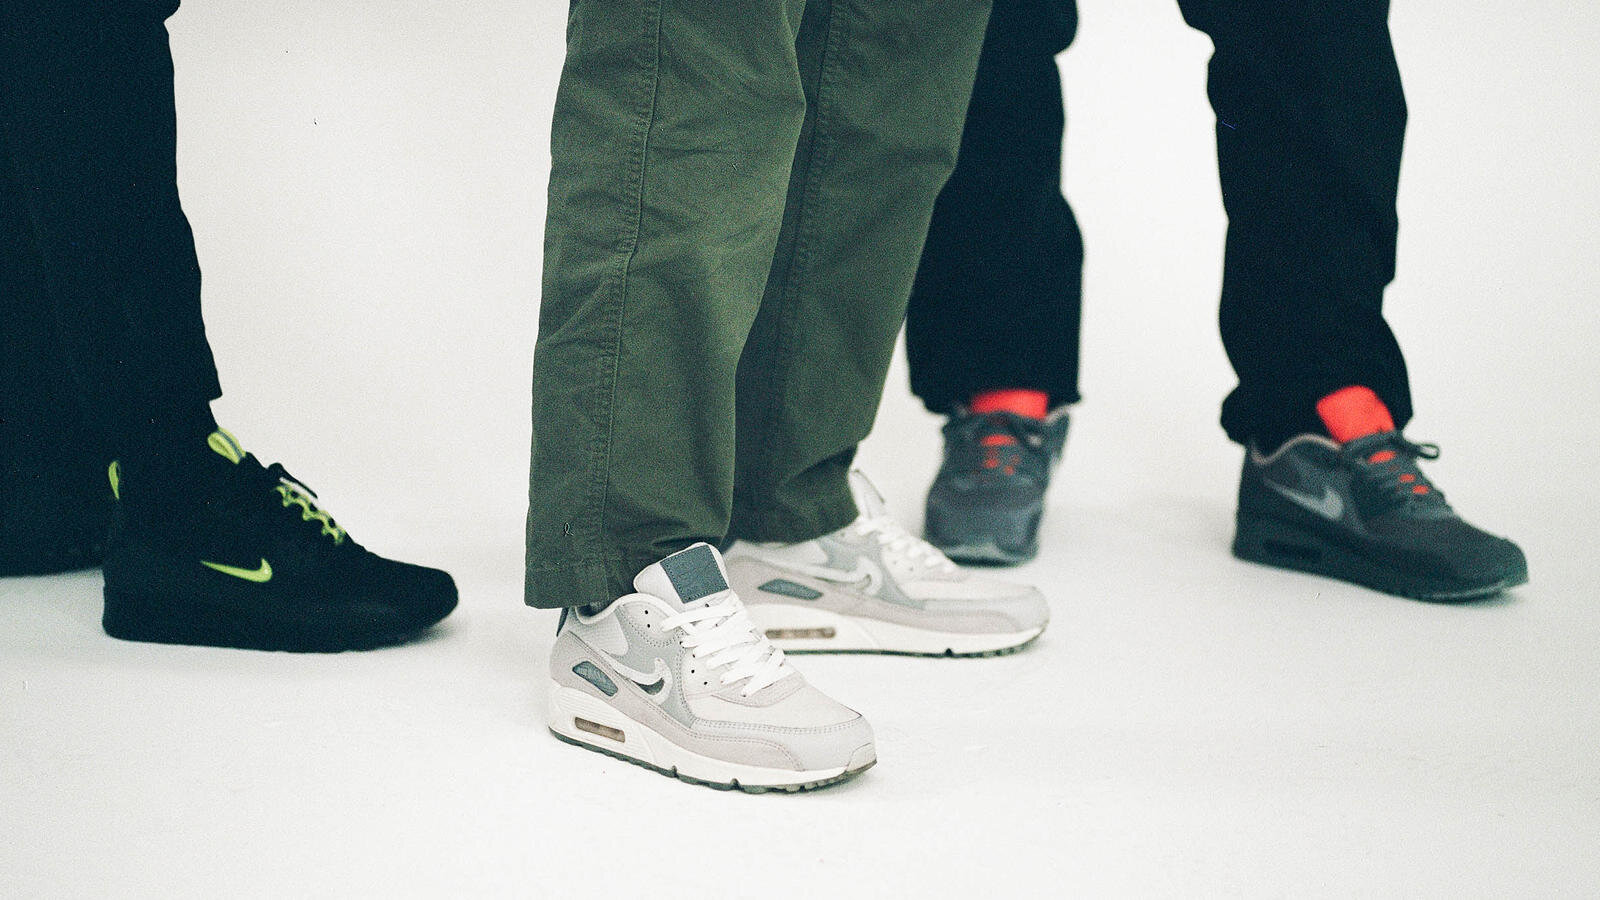 nike-bsmnt-air-max-90-2_hd_1600.jpg